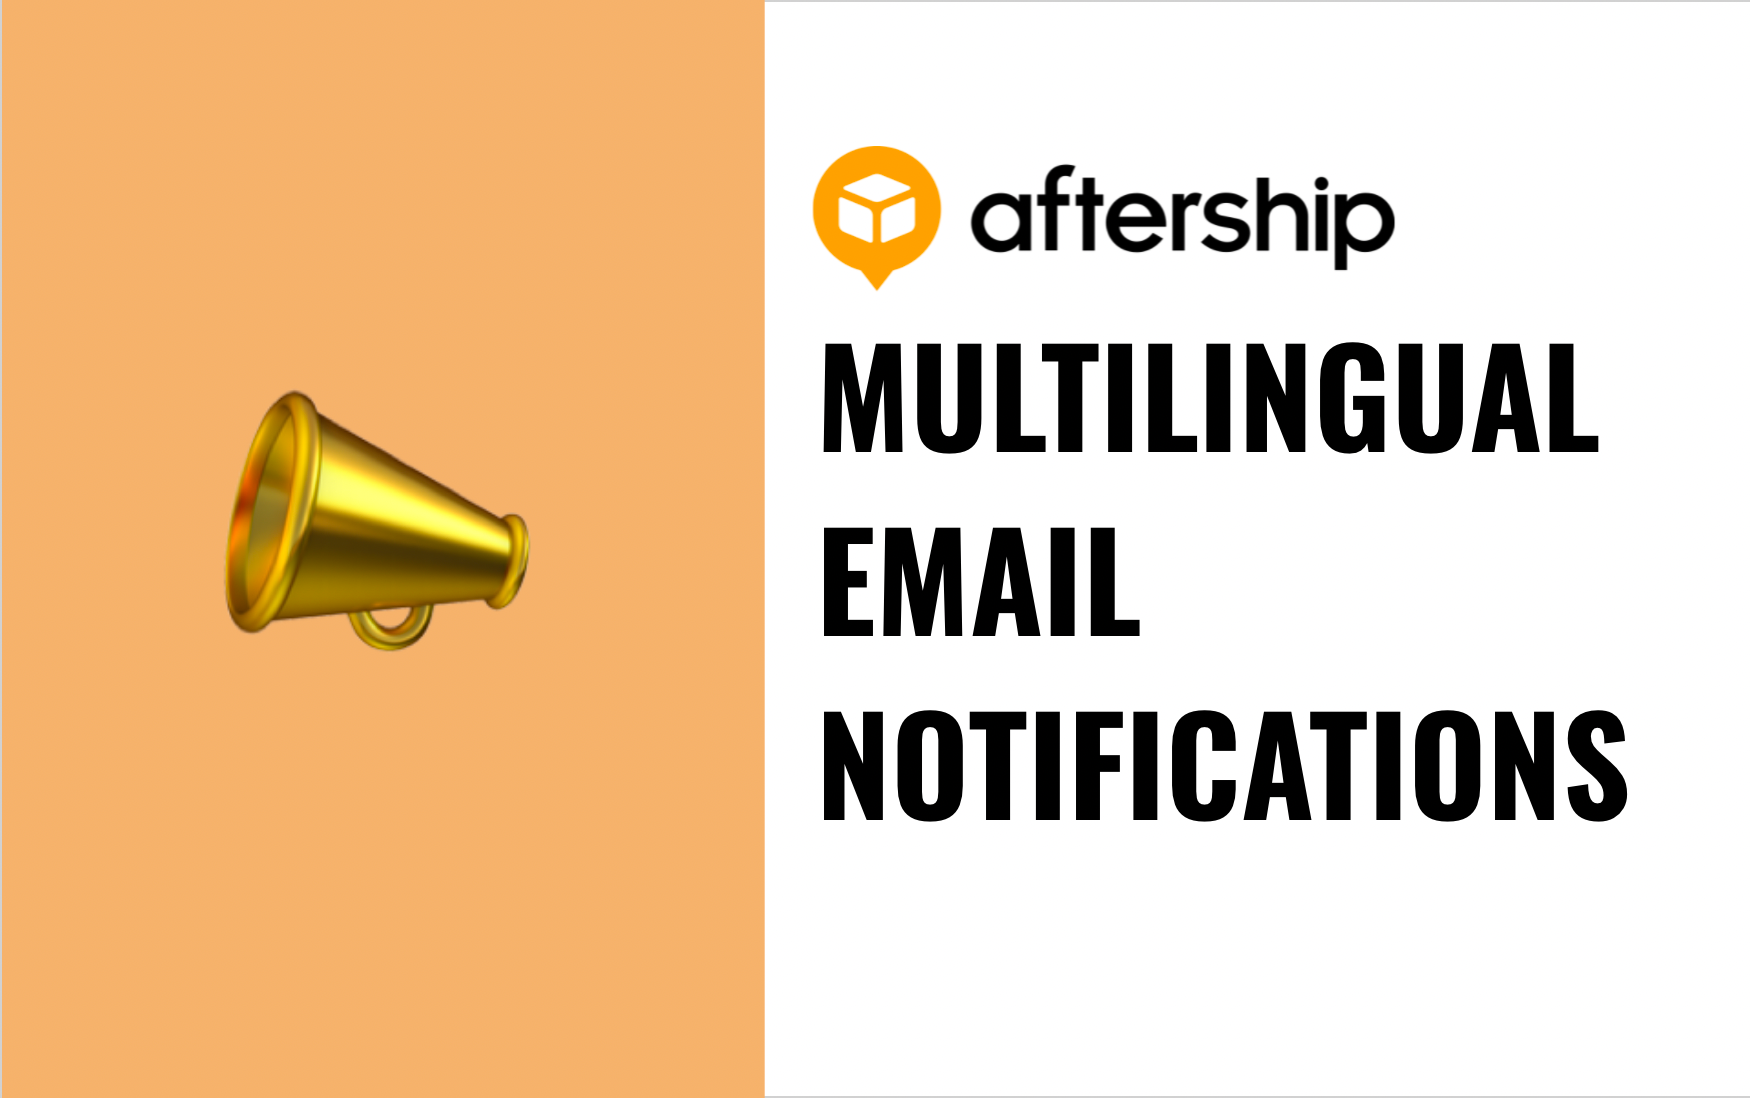 Build Lasting Customer Relations With Multilingual Email Notifications